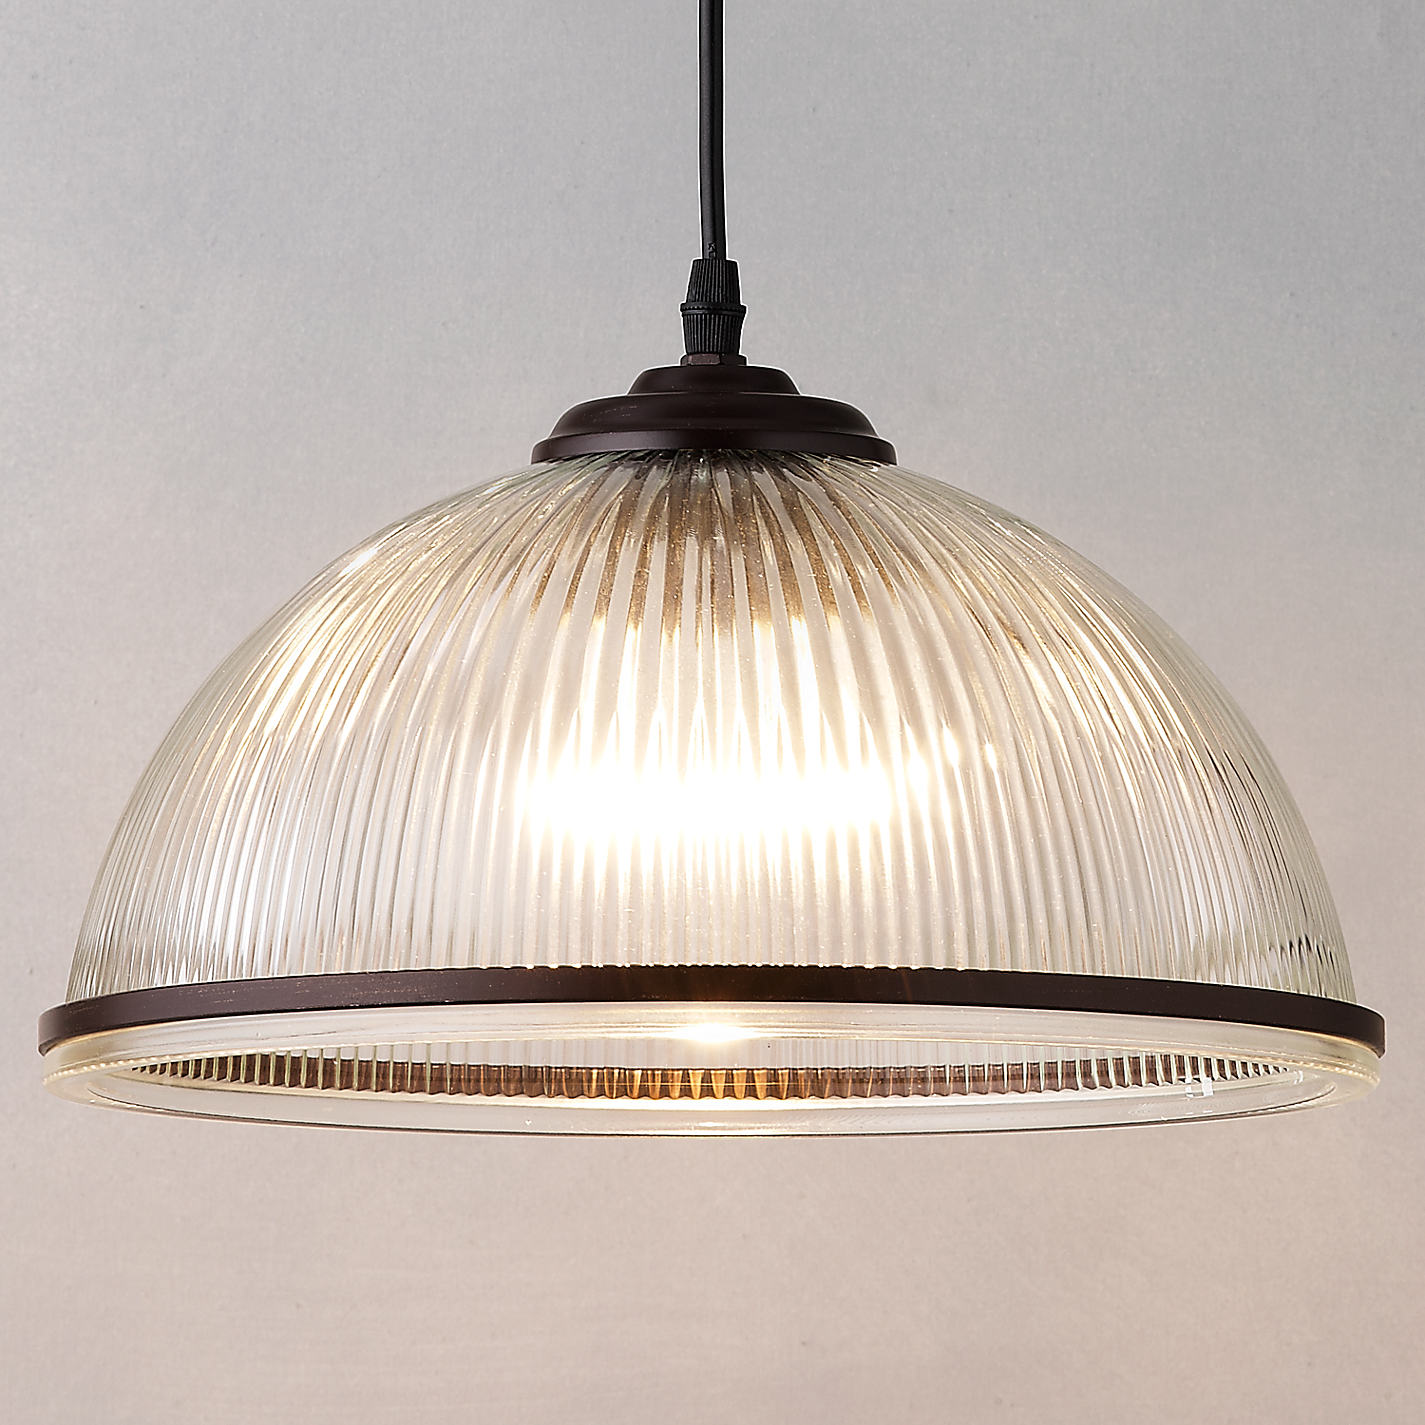 Alium Ceiling Light John Lewis : John lewis ceiling lights kitchen decoratingspecial